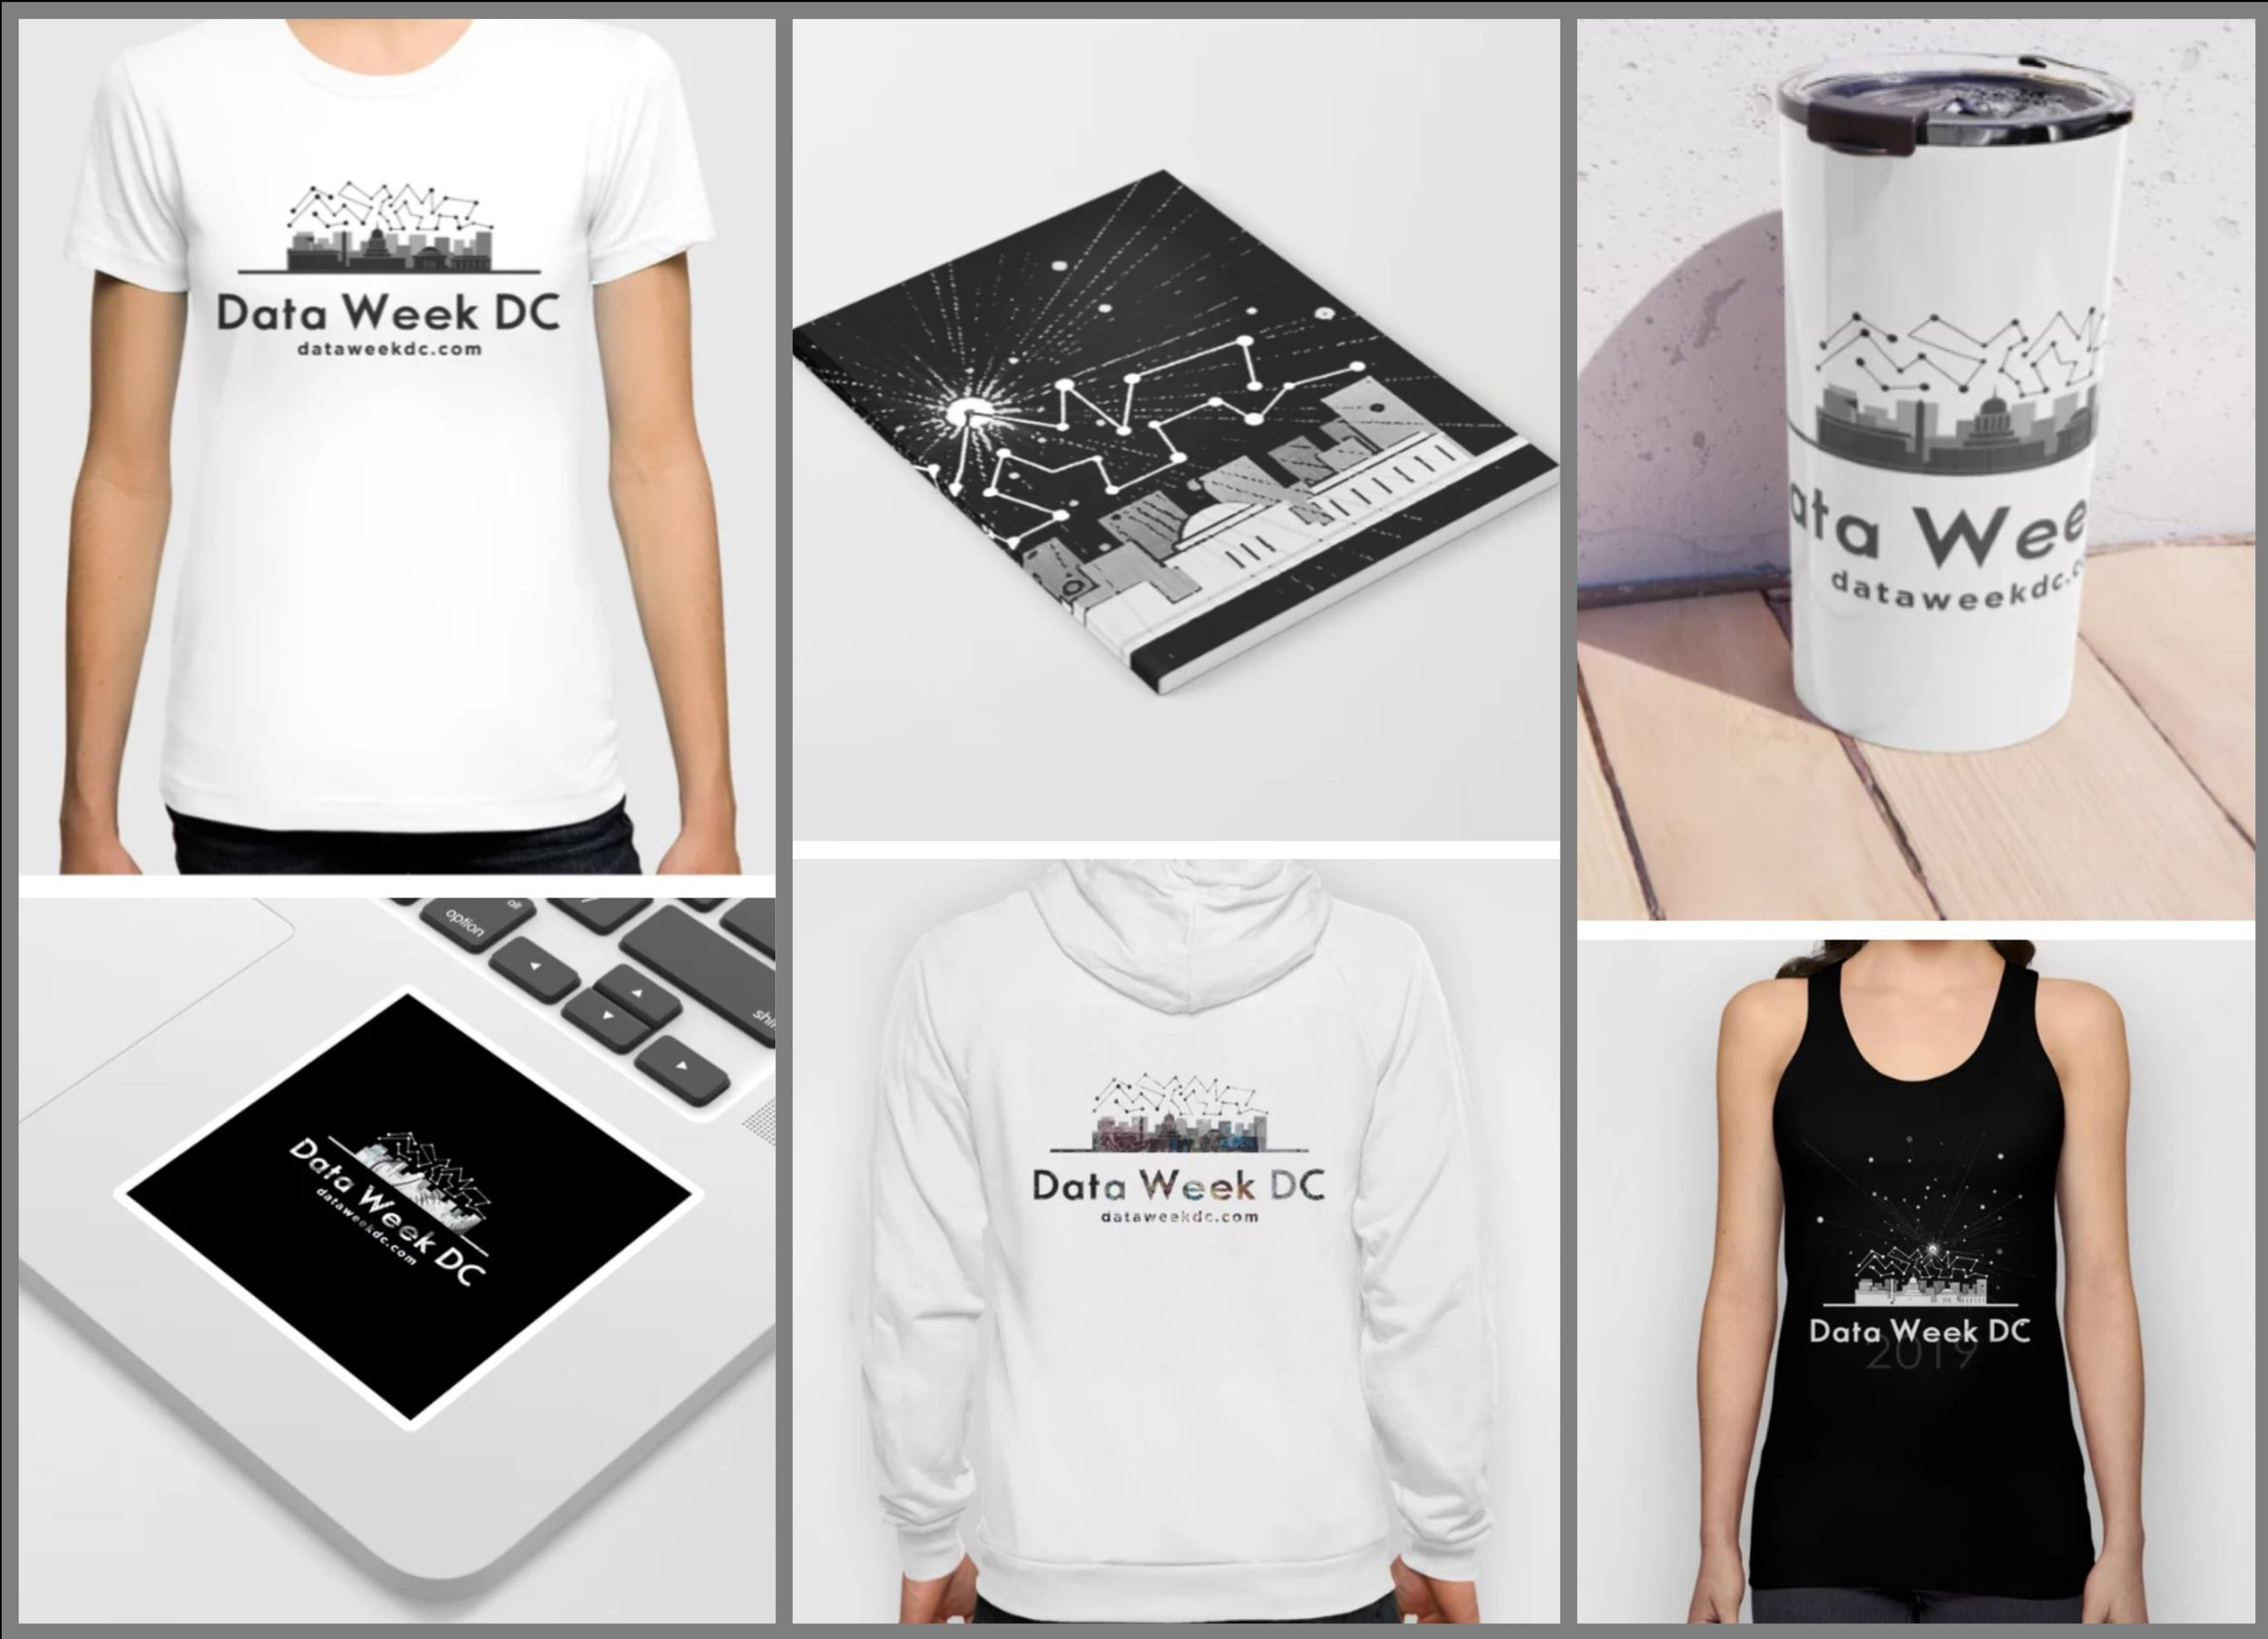 GET YOUR MERCH ON -